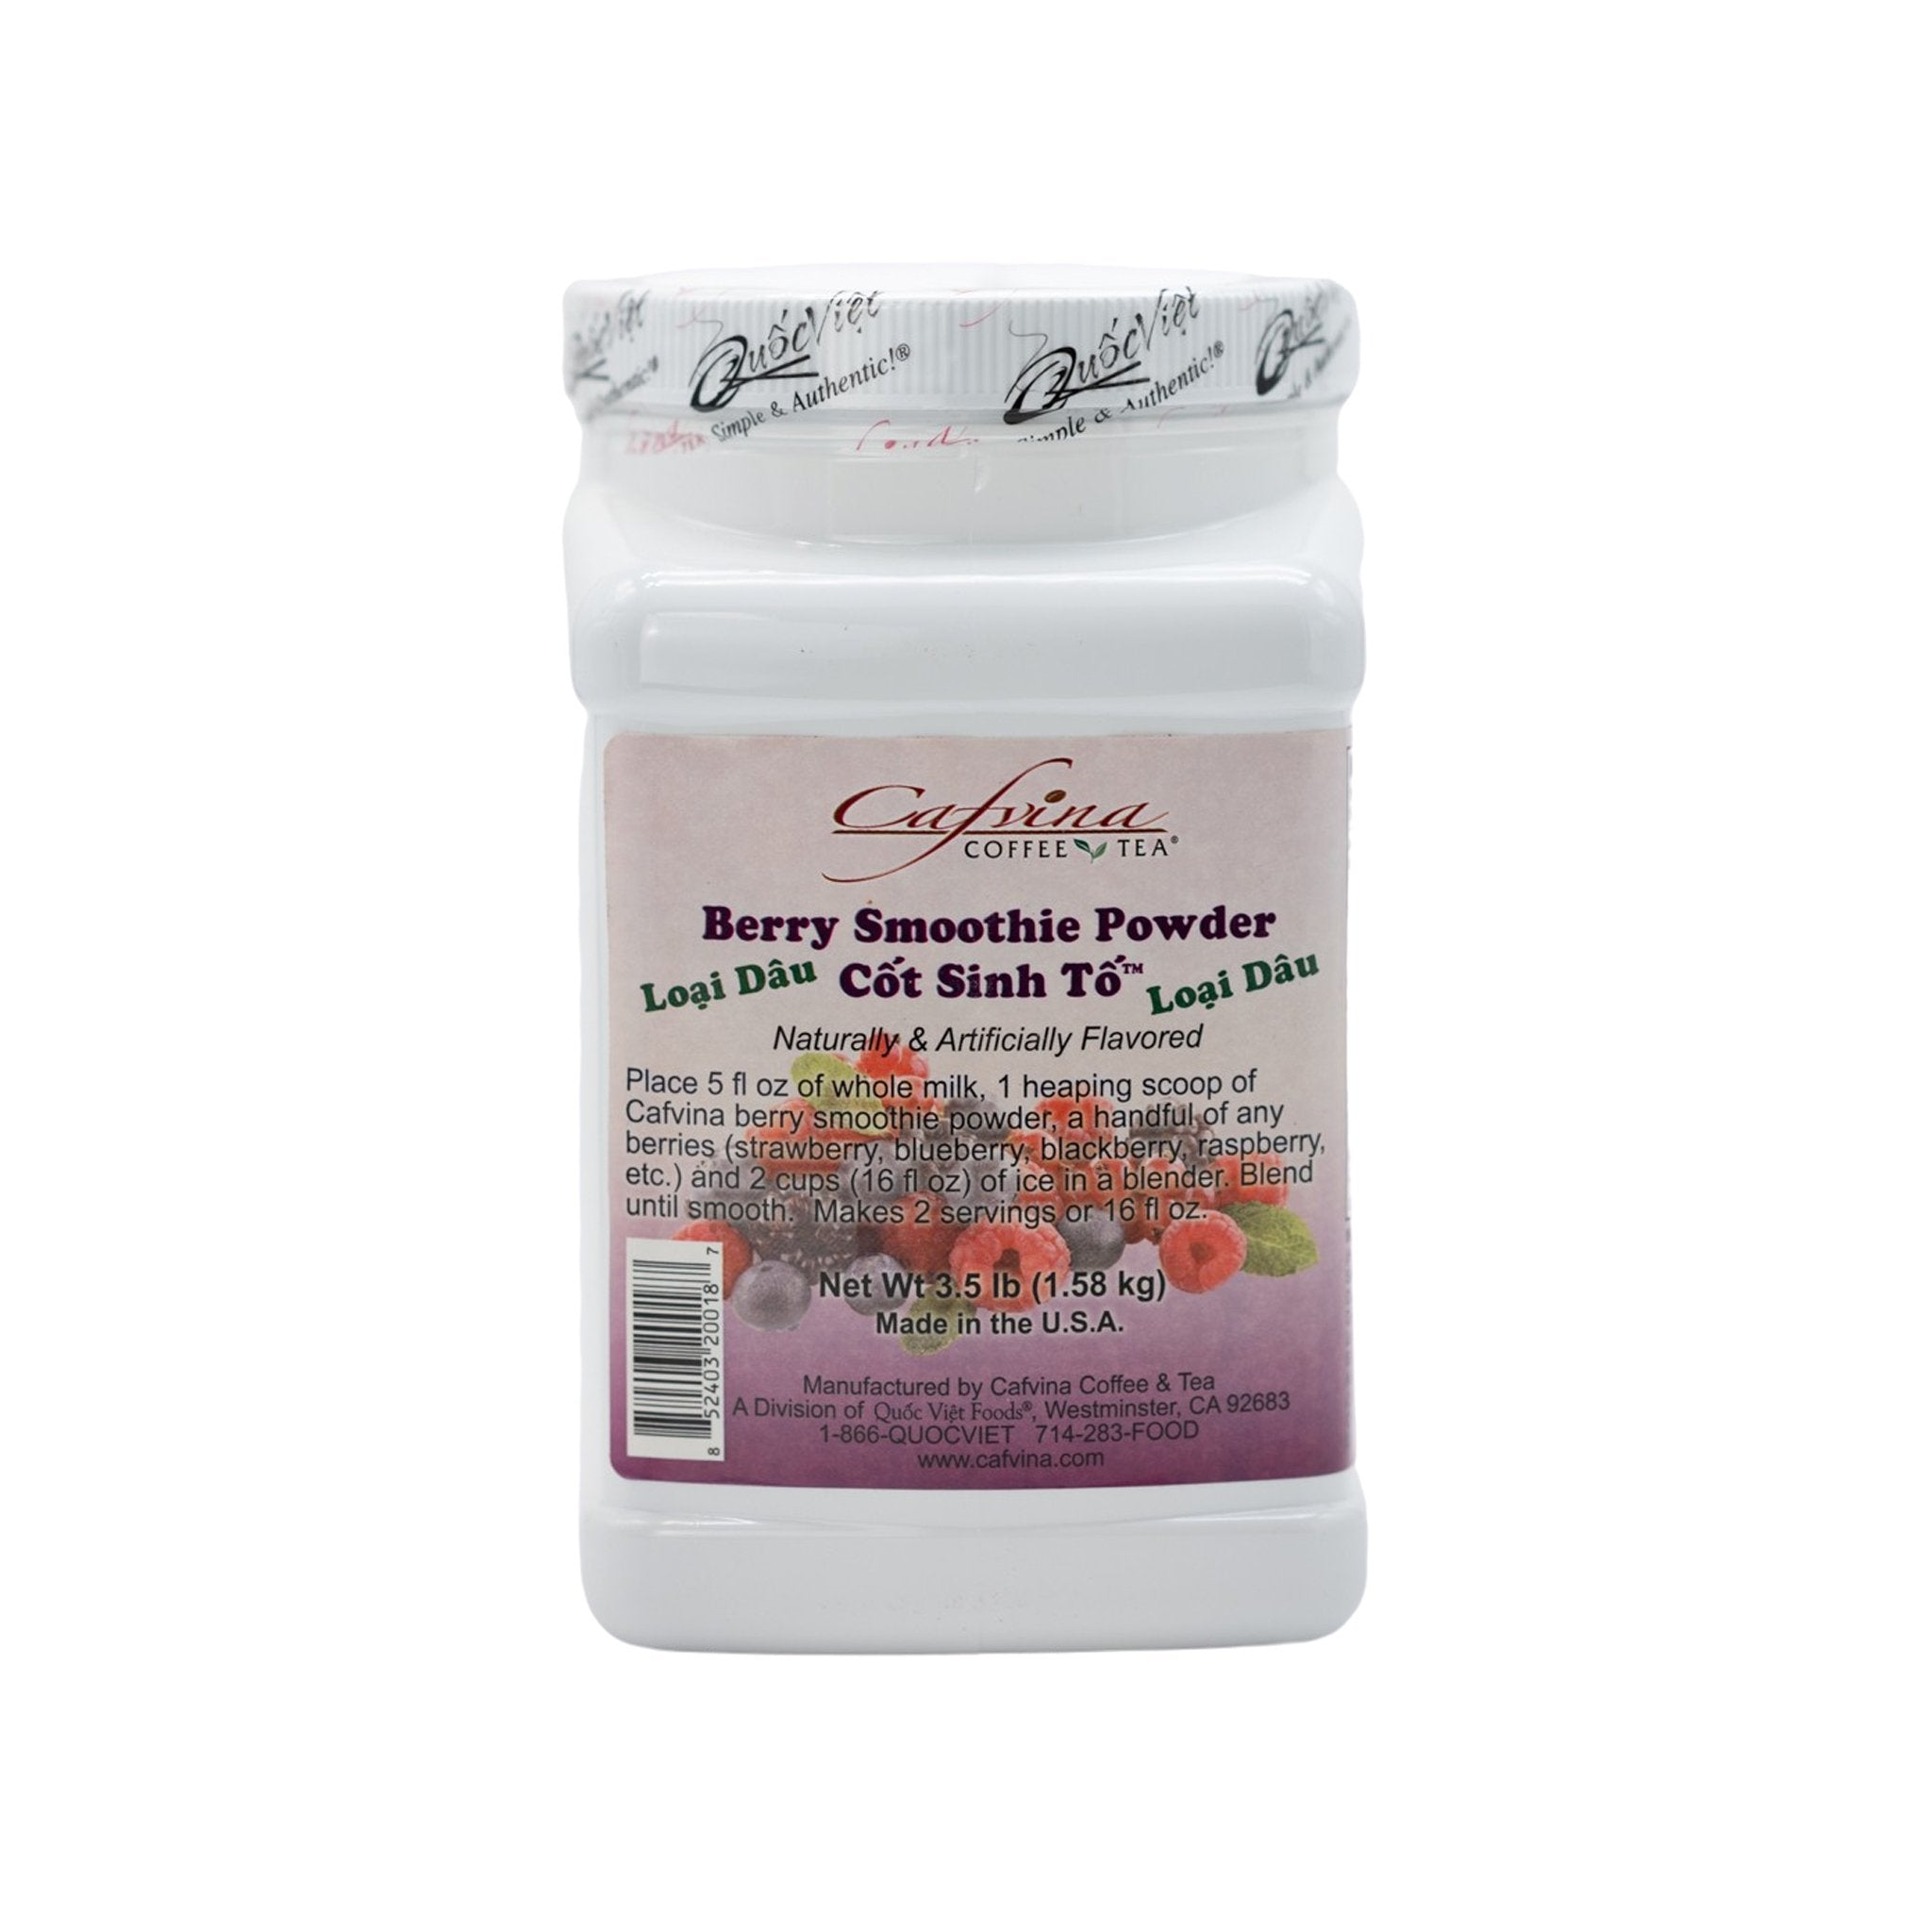 Berry Smoothie Powder